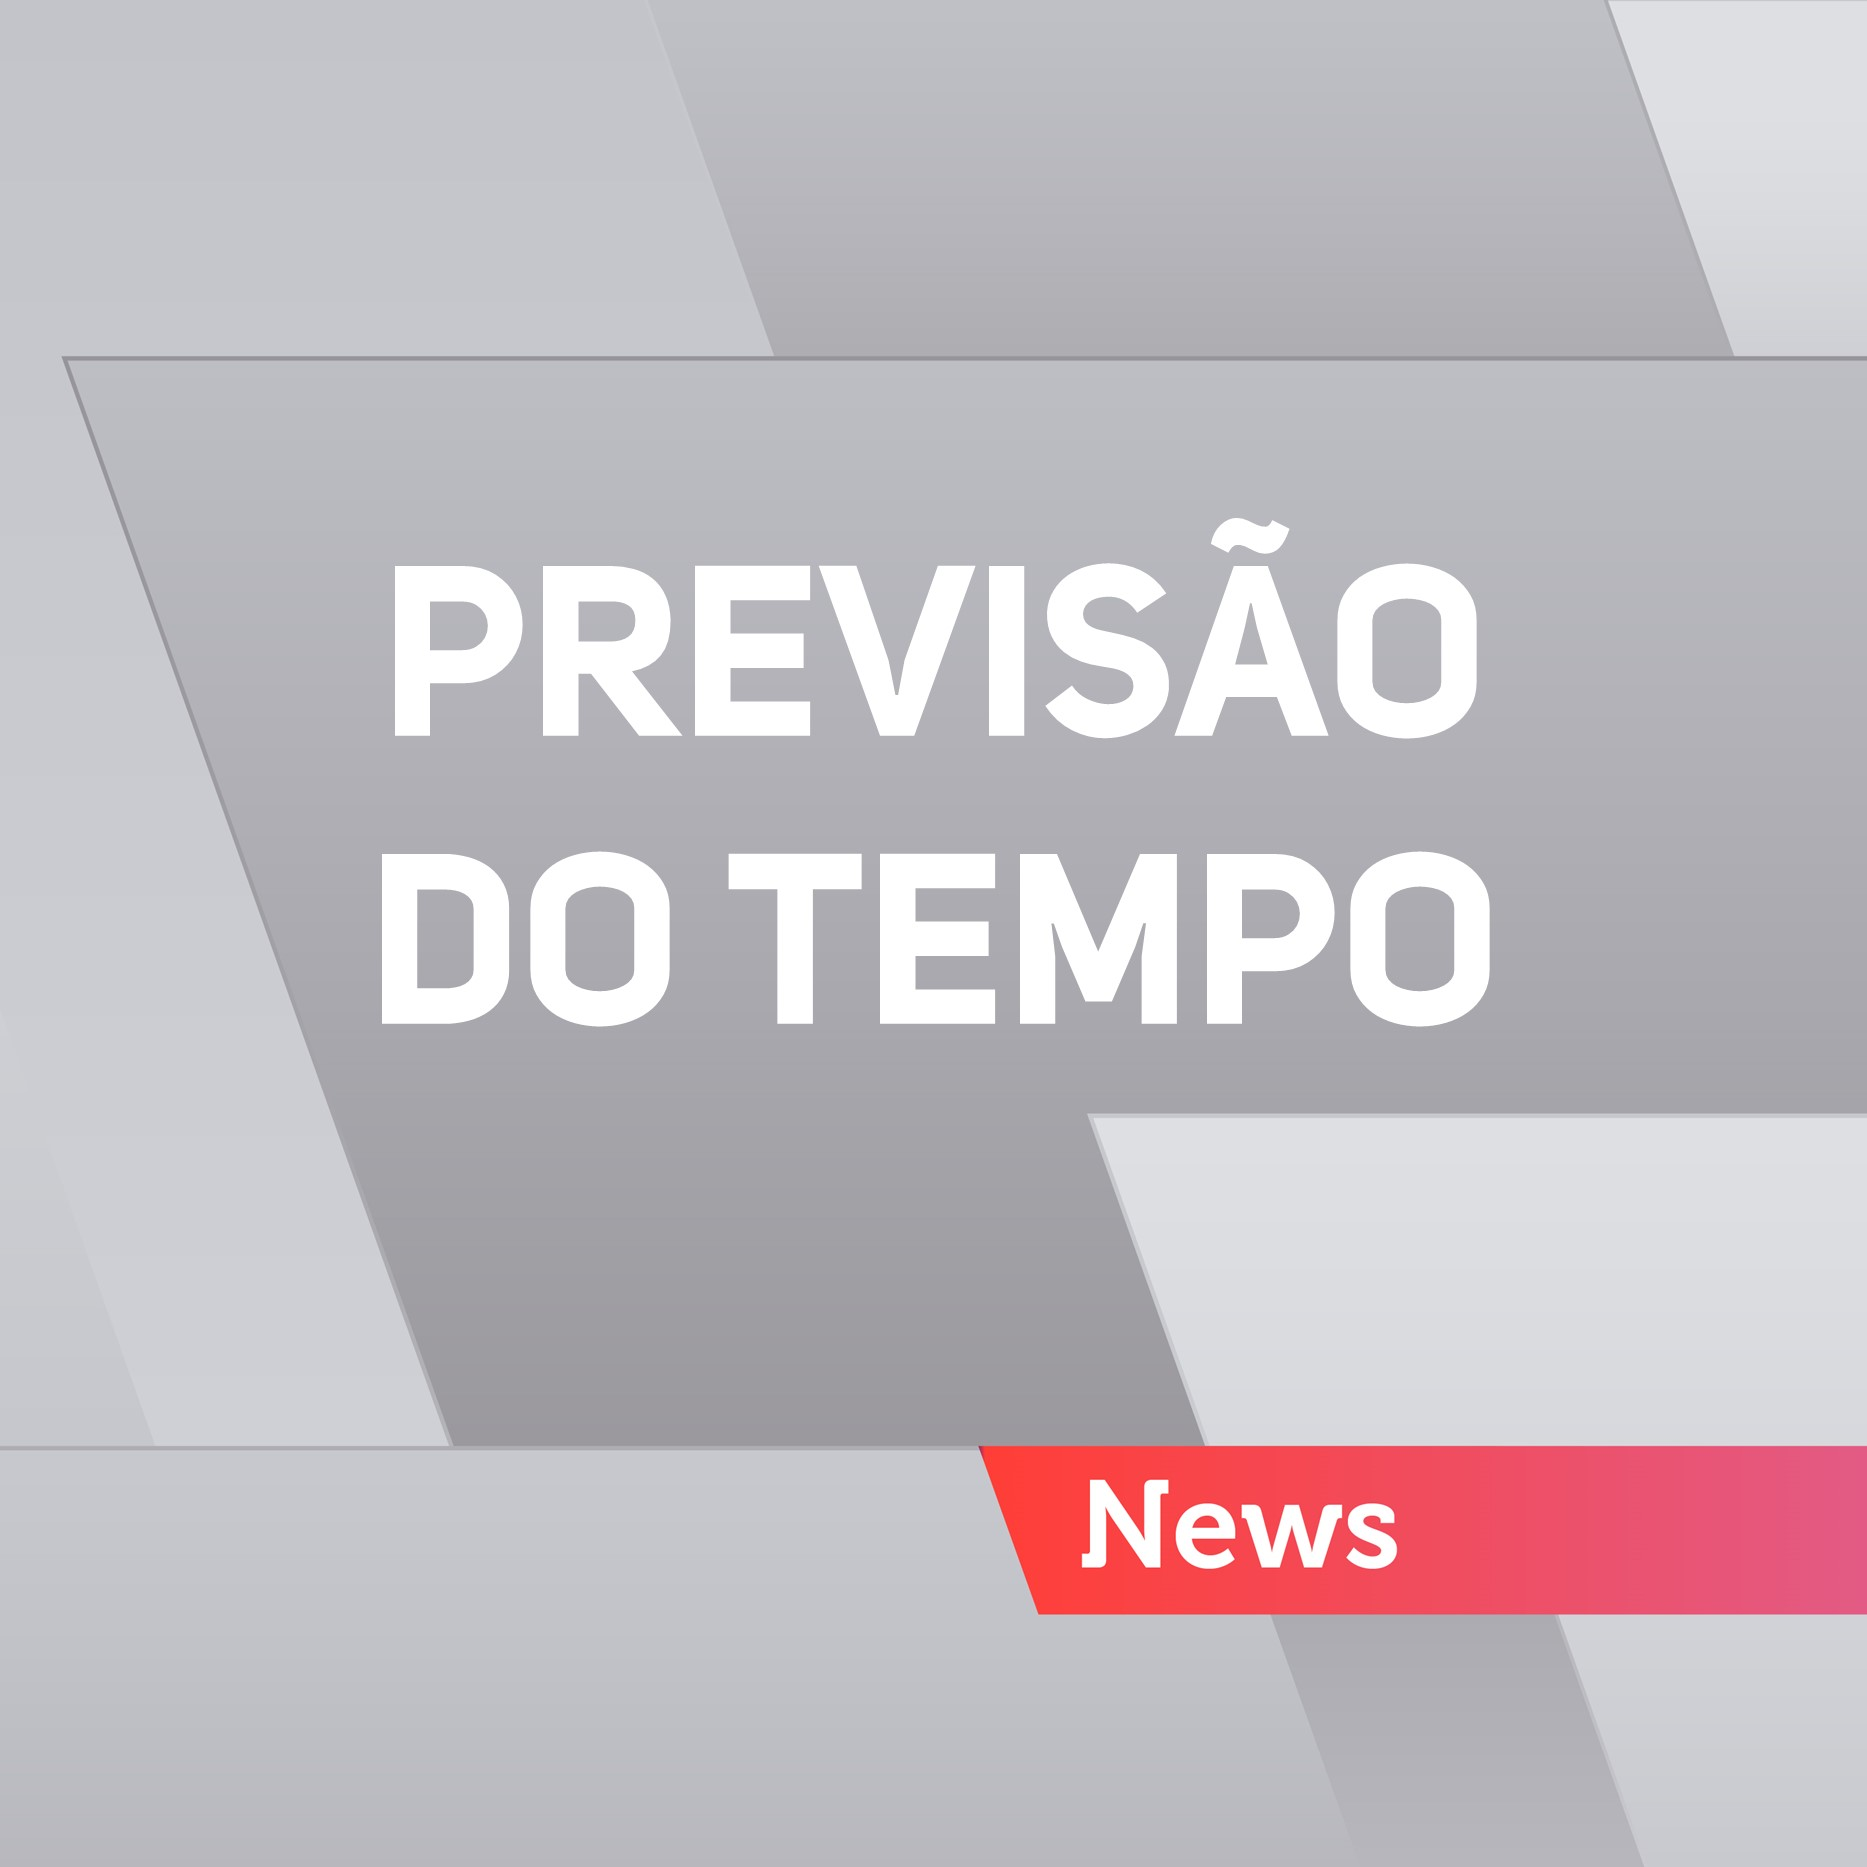 Previsão do tempo em 1 minuto – 23/04/2018